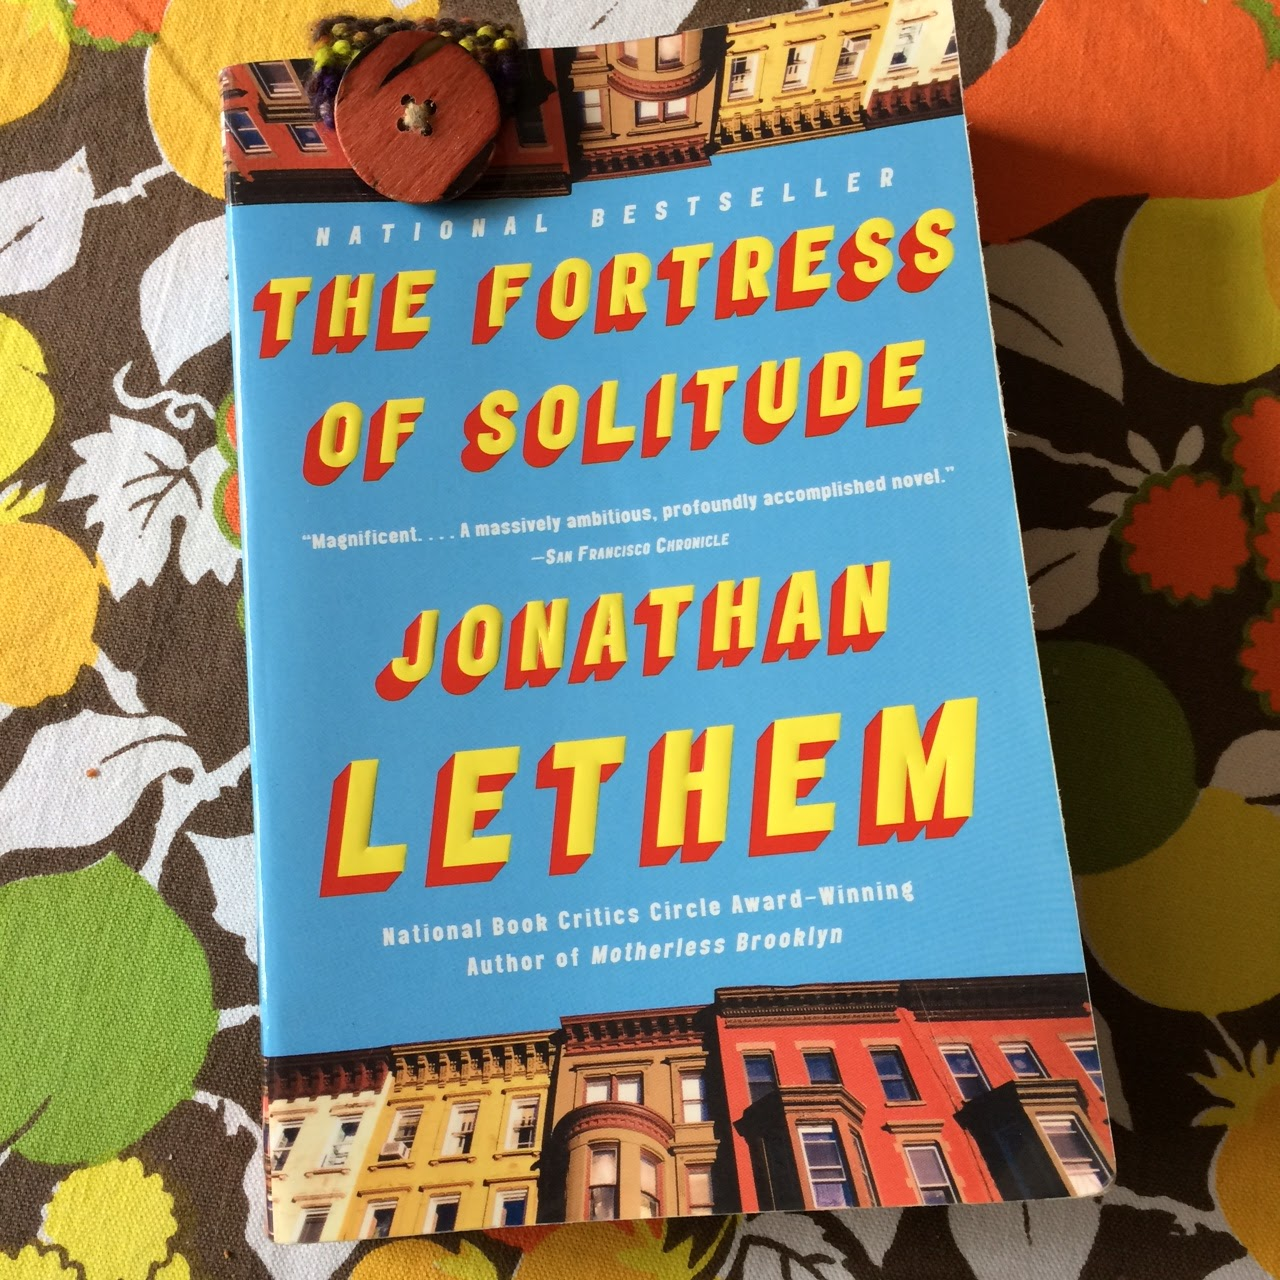 Now? I Love It And By Love It I Mean I Love It! The Fortress Of Solitude  By Jonathan Letham Is The The Adventures Of Kavalier & Clay With Magic  Realism,